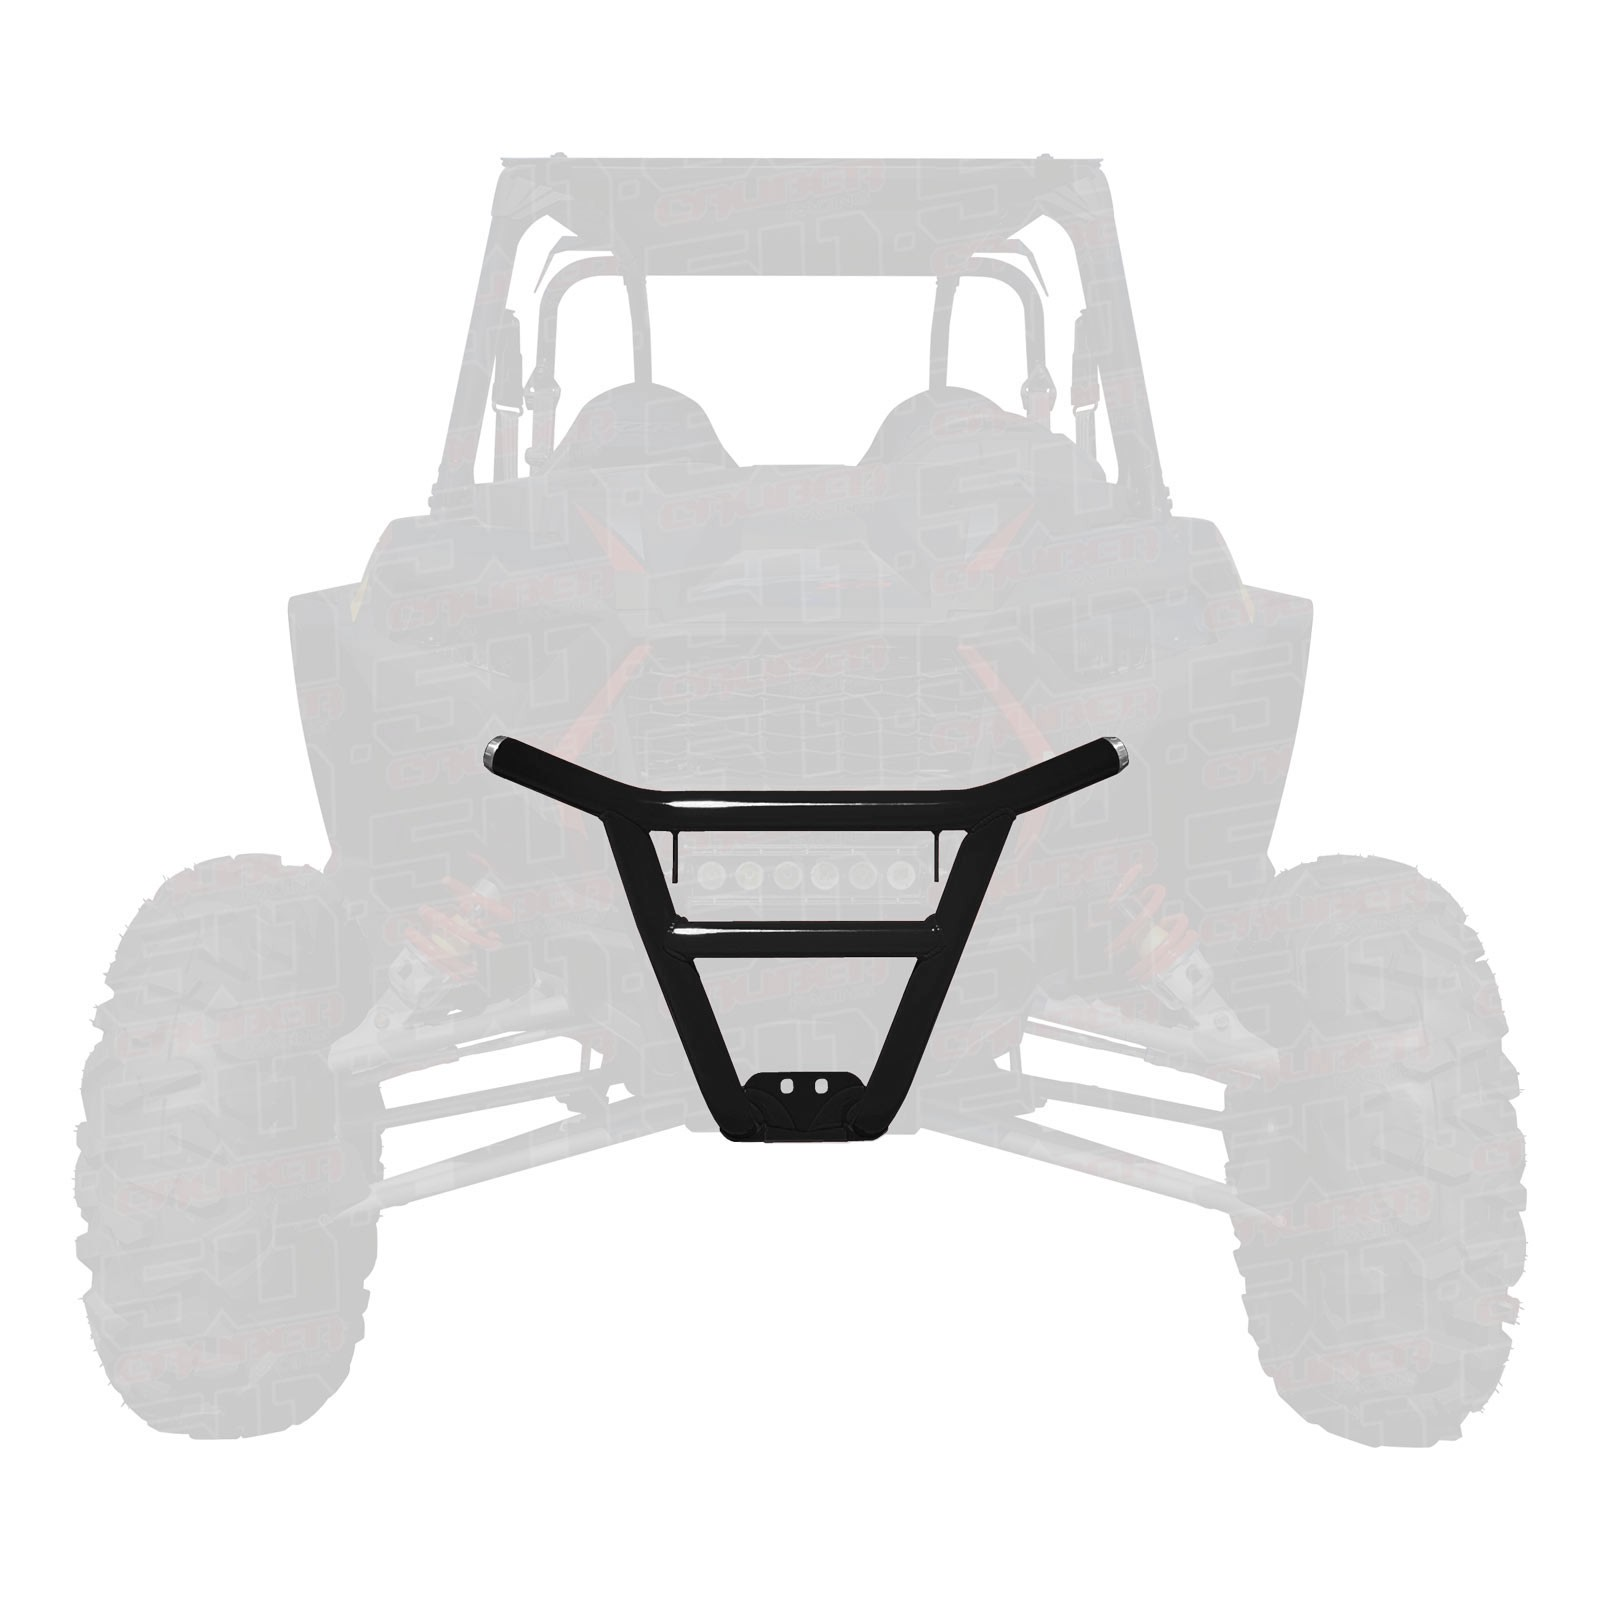 hight resolution of details about 50 caliber racing 2019 rzr xp1000 tubular front bumper black